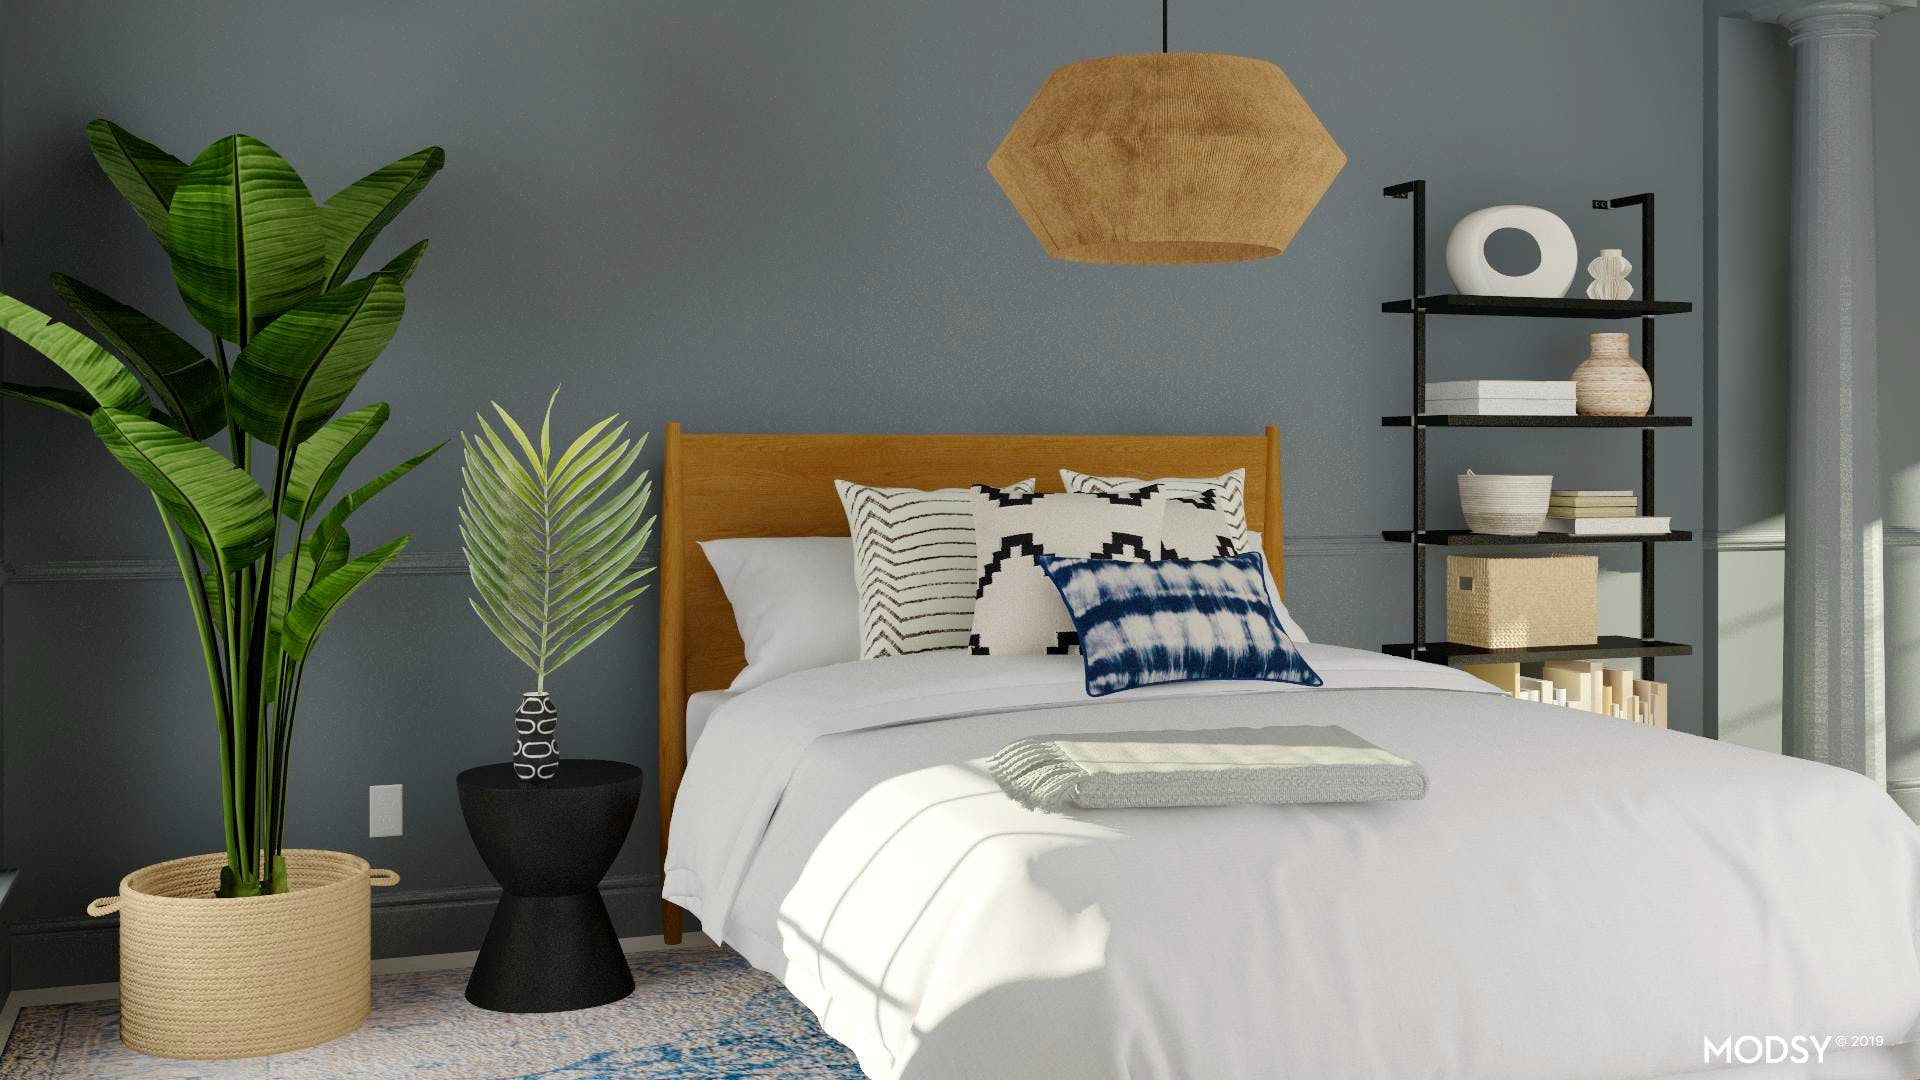 Creating A Bedroom Oasis